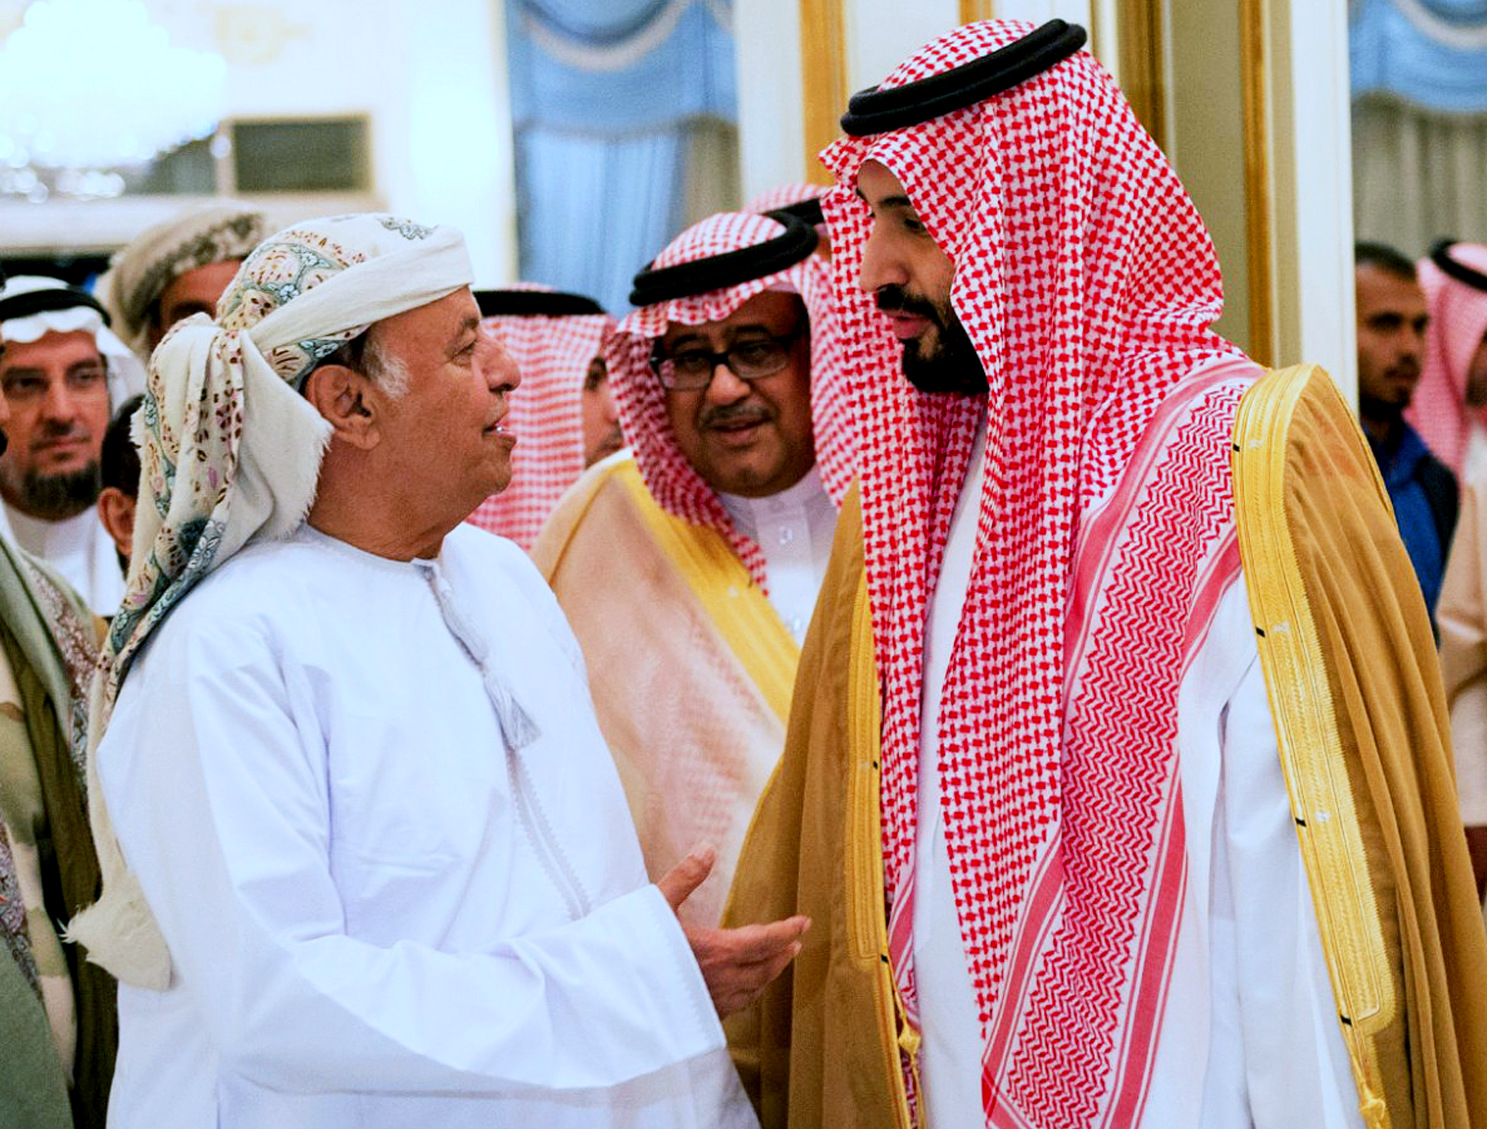 Abed Rabbo Mansour Hadi, left, talks with Saudi Defense Minister Mohammed bin Salman as he arrives in Riyadh, Saudi Arabia, Thursday, March 26, 2015. (AP Photo/SPA)